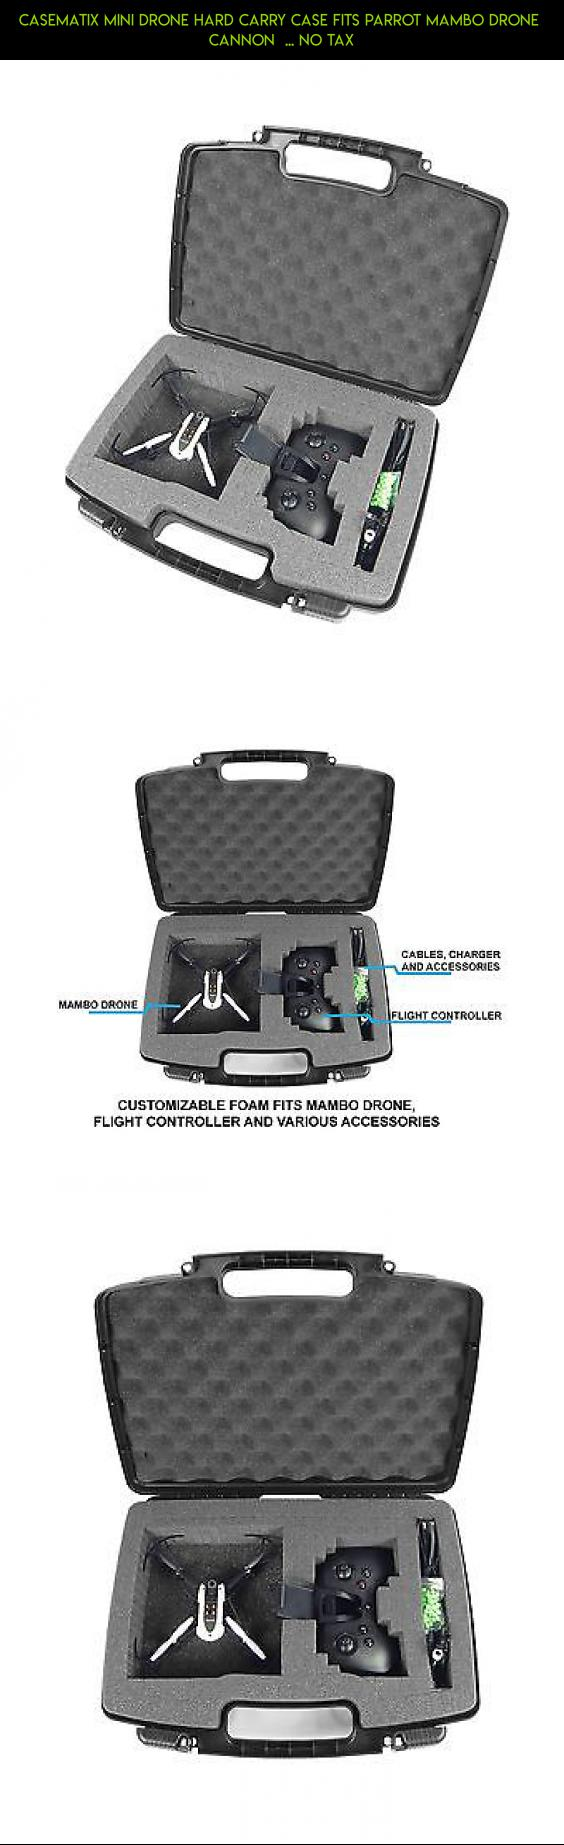 CASEMATIX Mini Drone Hard Carry Case Fits Parrot Mambo Cannon NO TAX